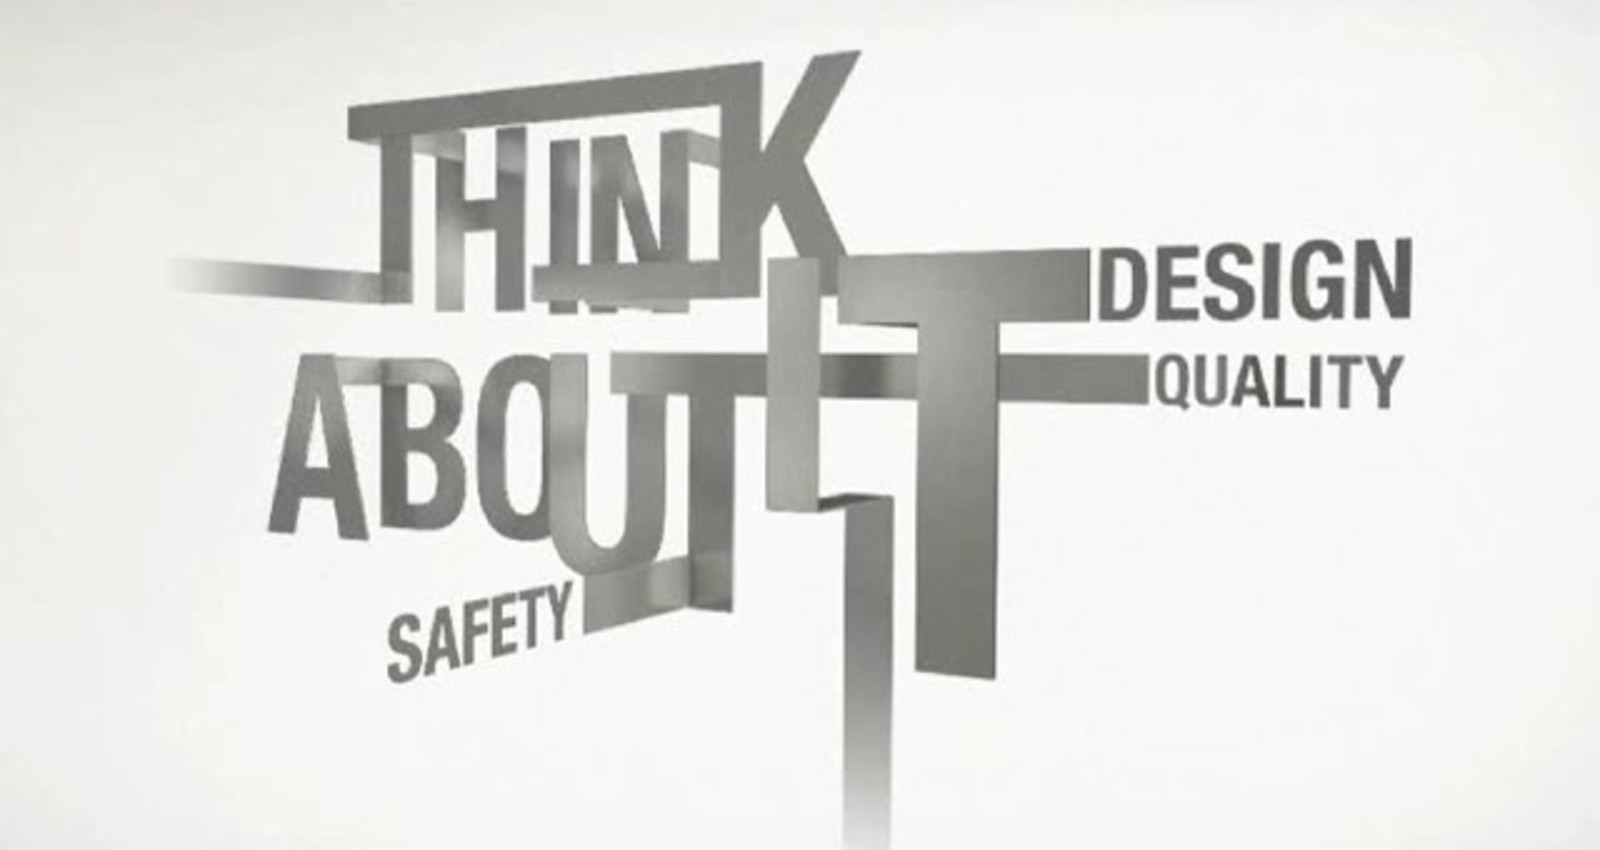 Hyundai Think About It Teaser Site